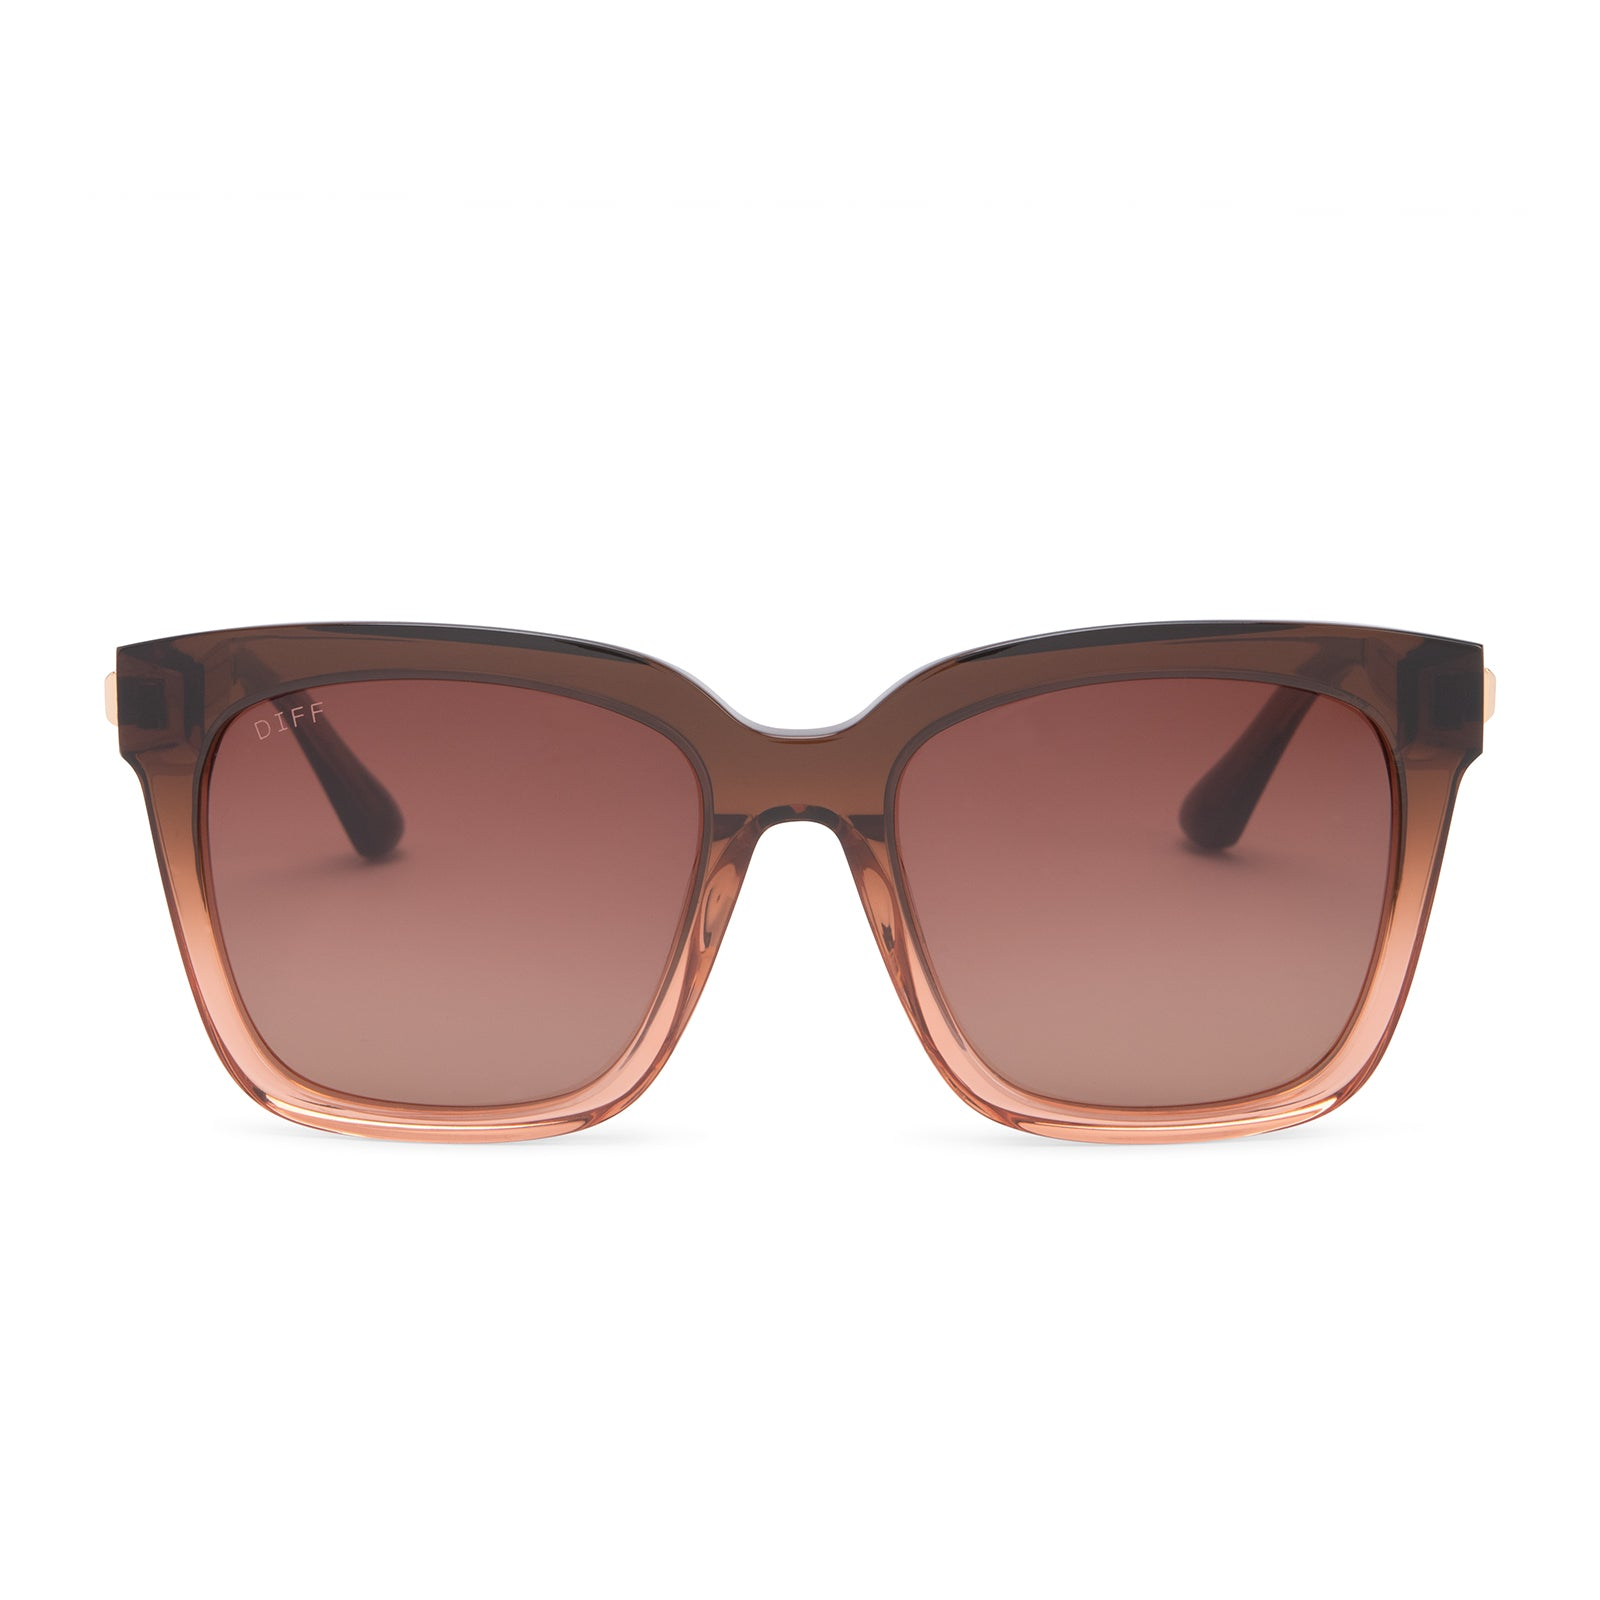 Bella sunglasses with taupe ombre crystal frames and brown gradient polarized lens front view